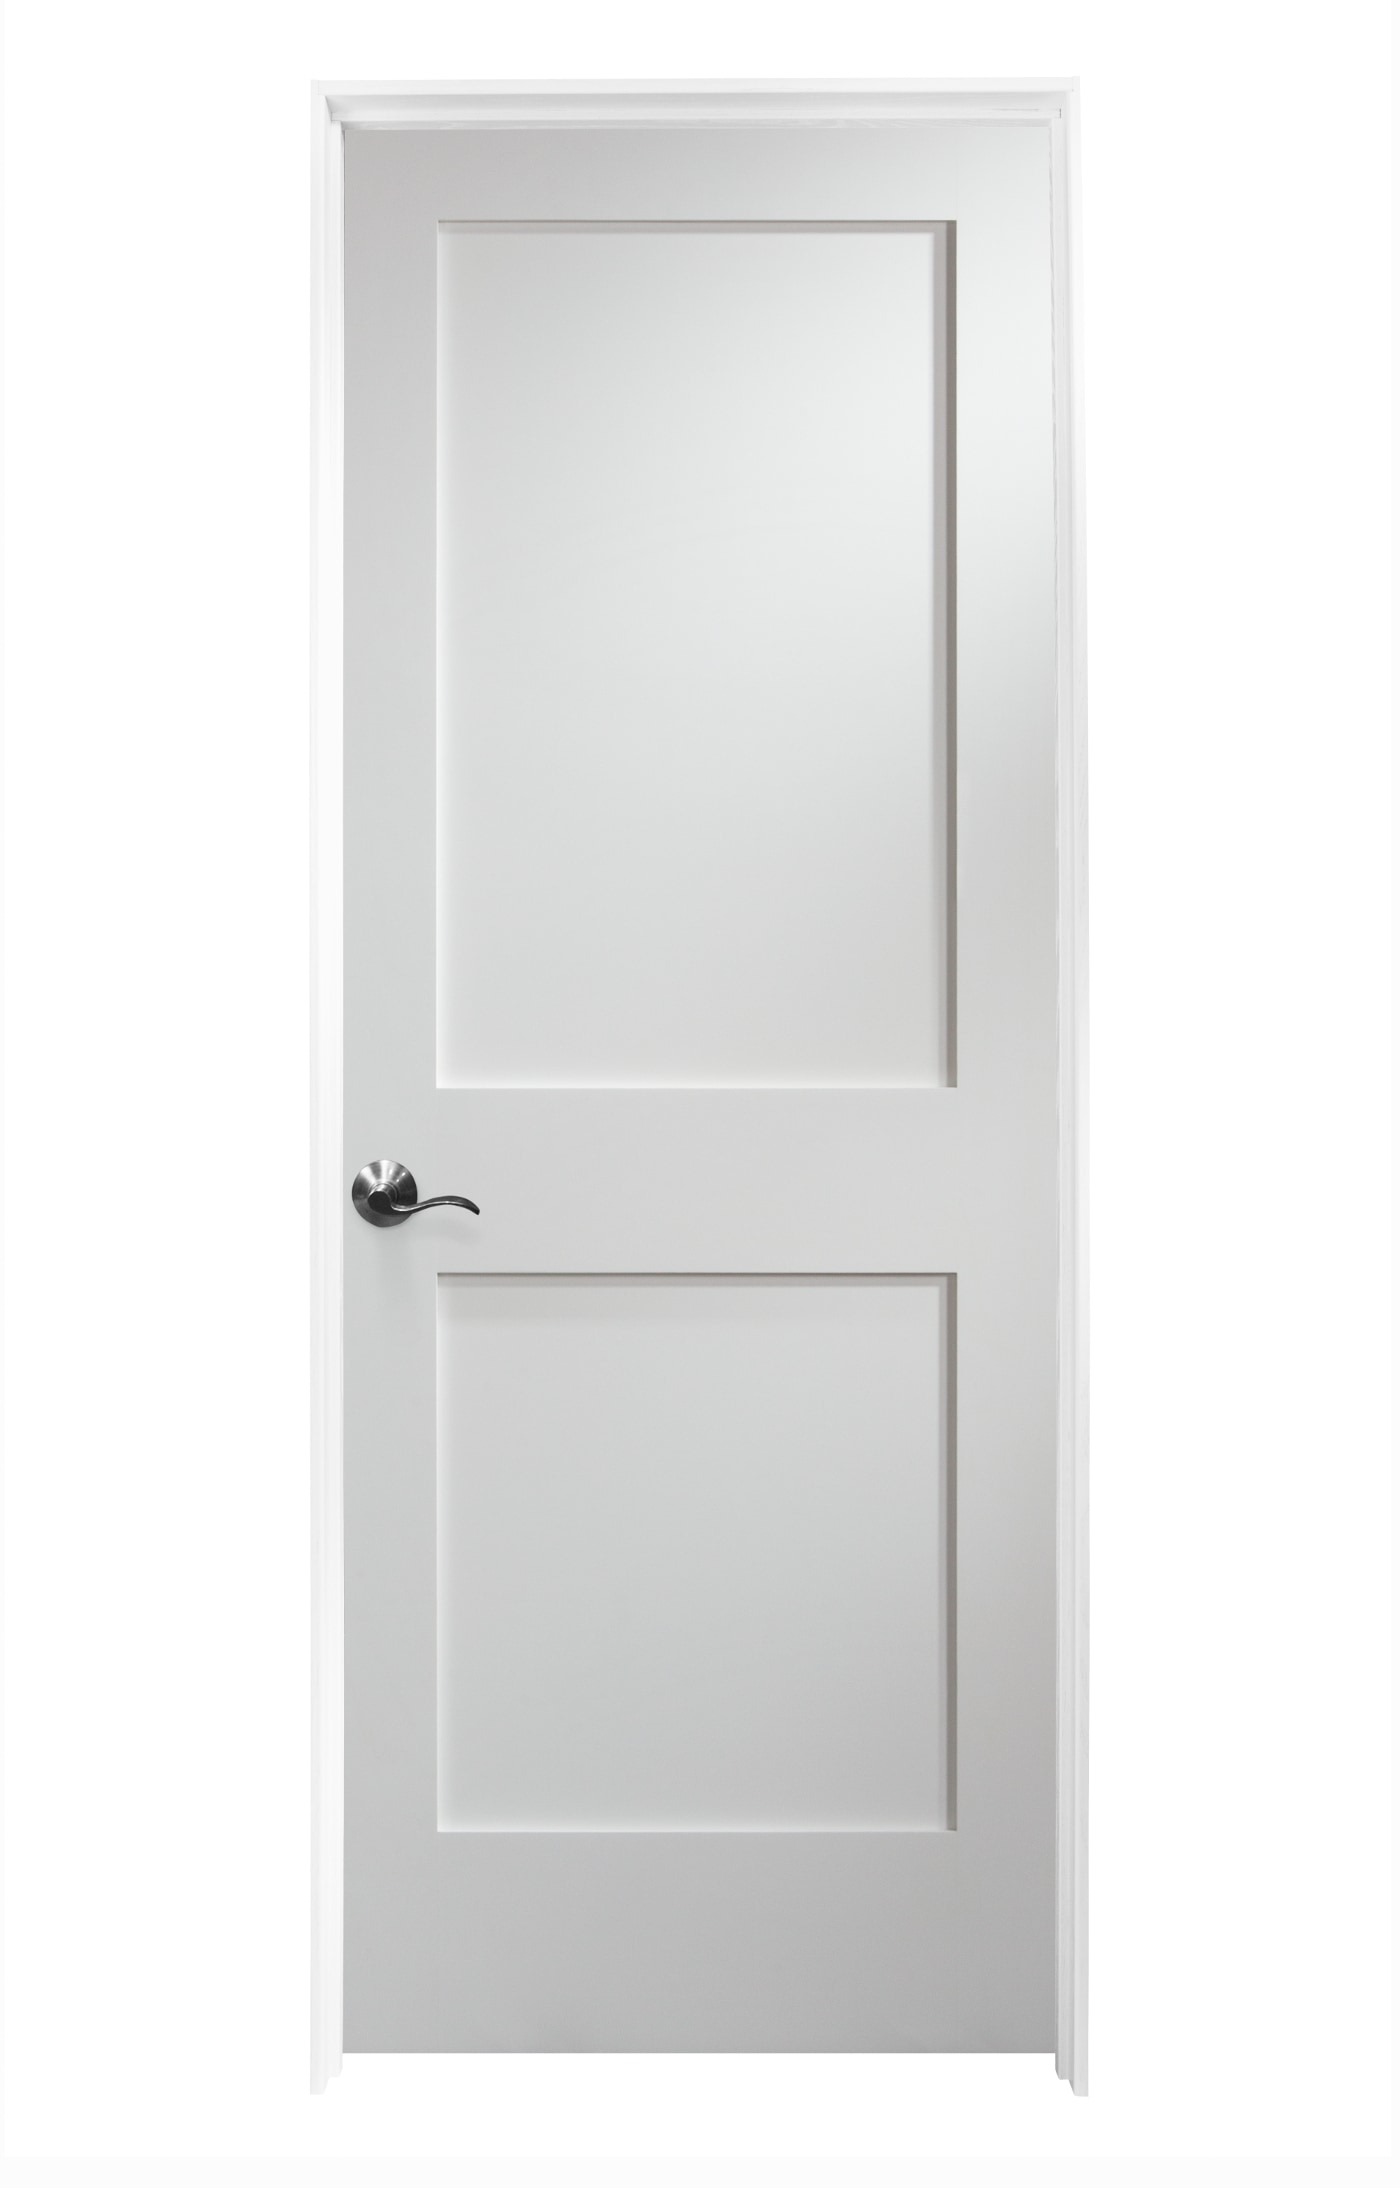 woodport doors interior doors knock down shaker collection painted